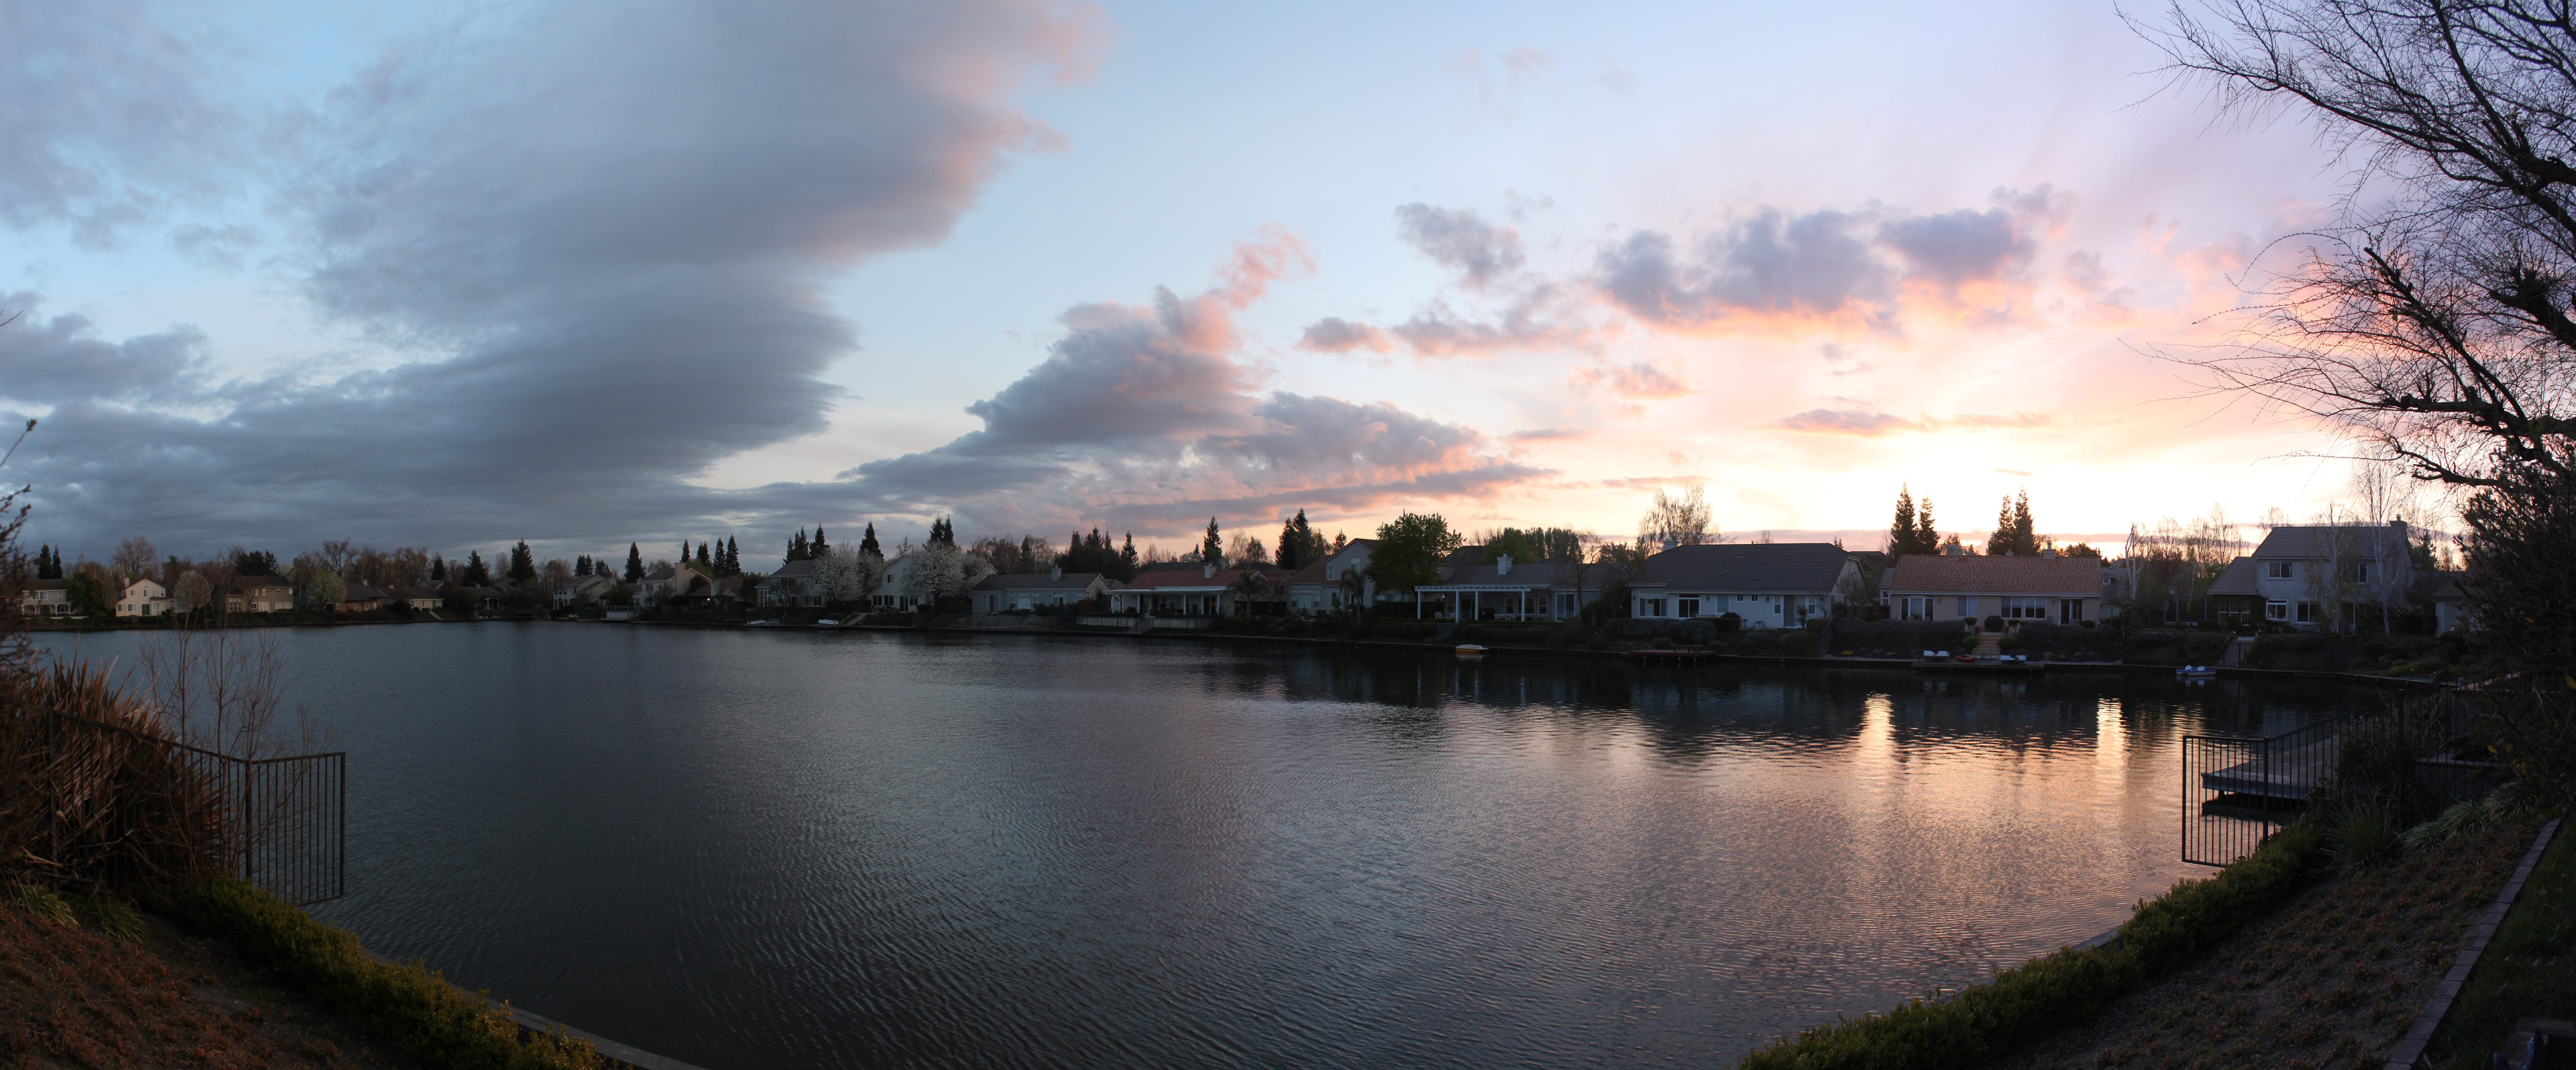 panorama of my backyard during a sunset by mrwho103 on deviantart